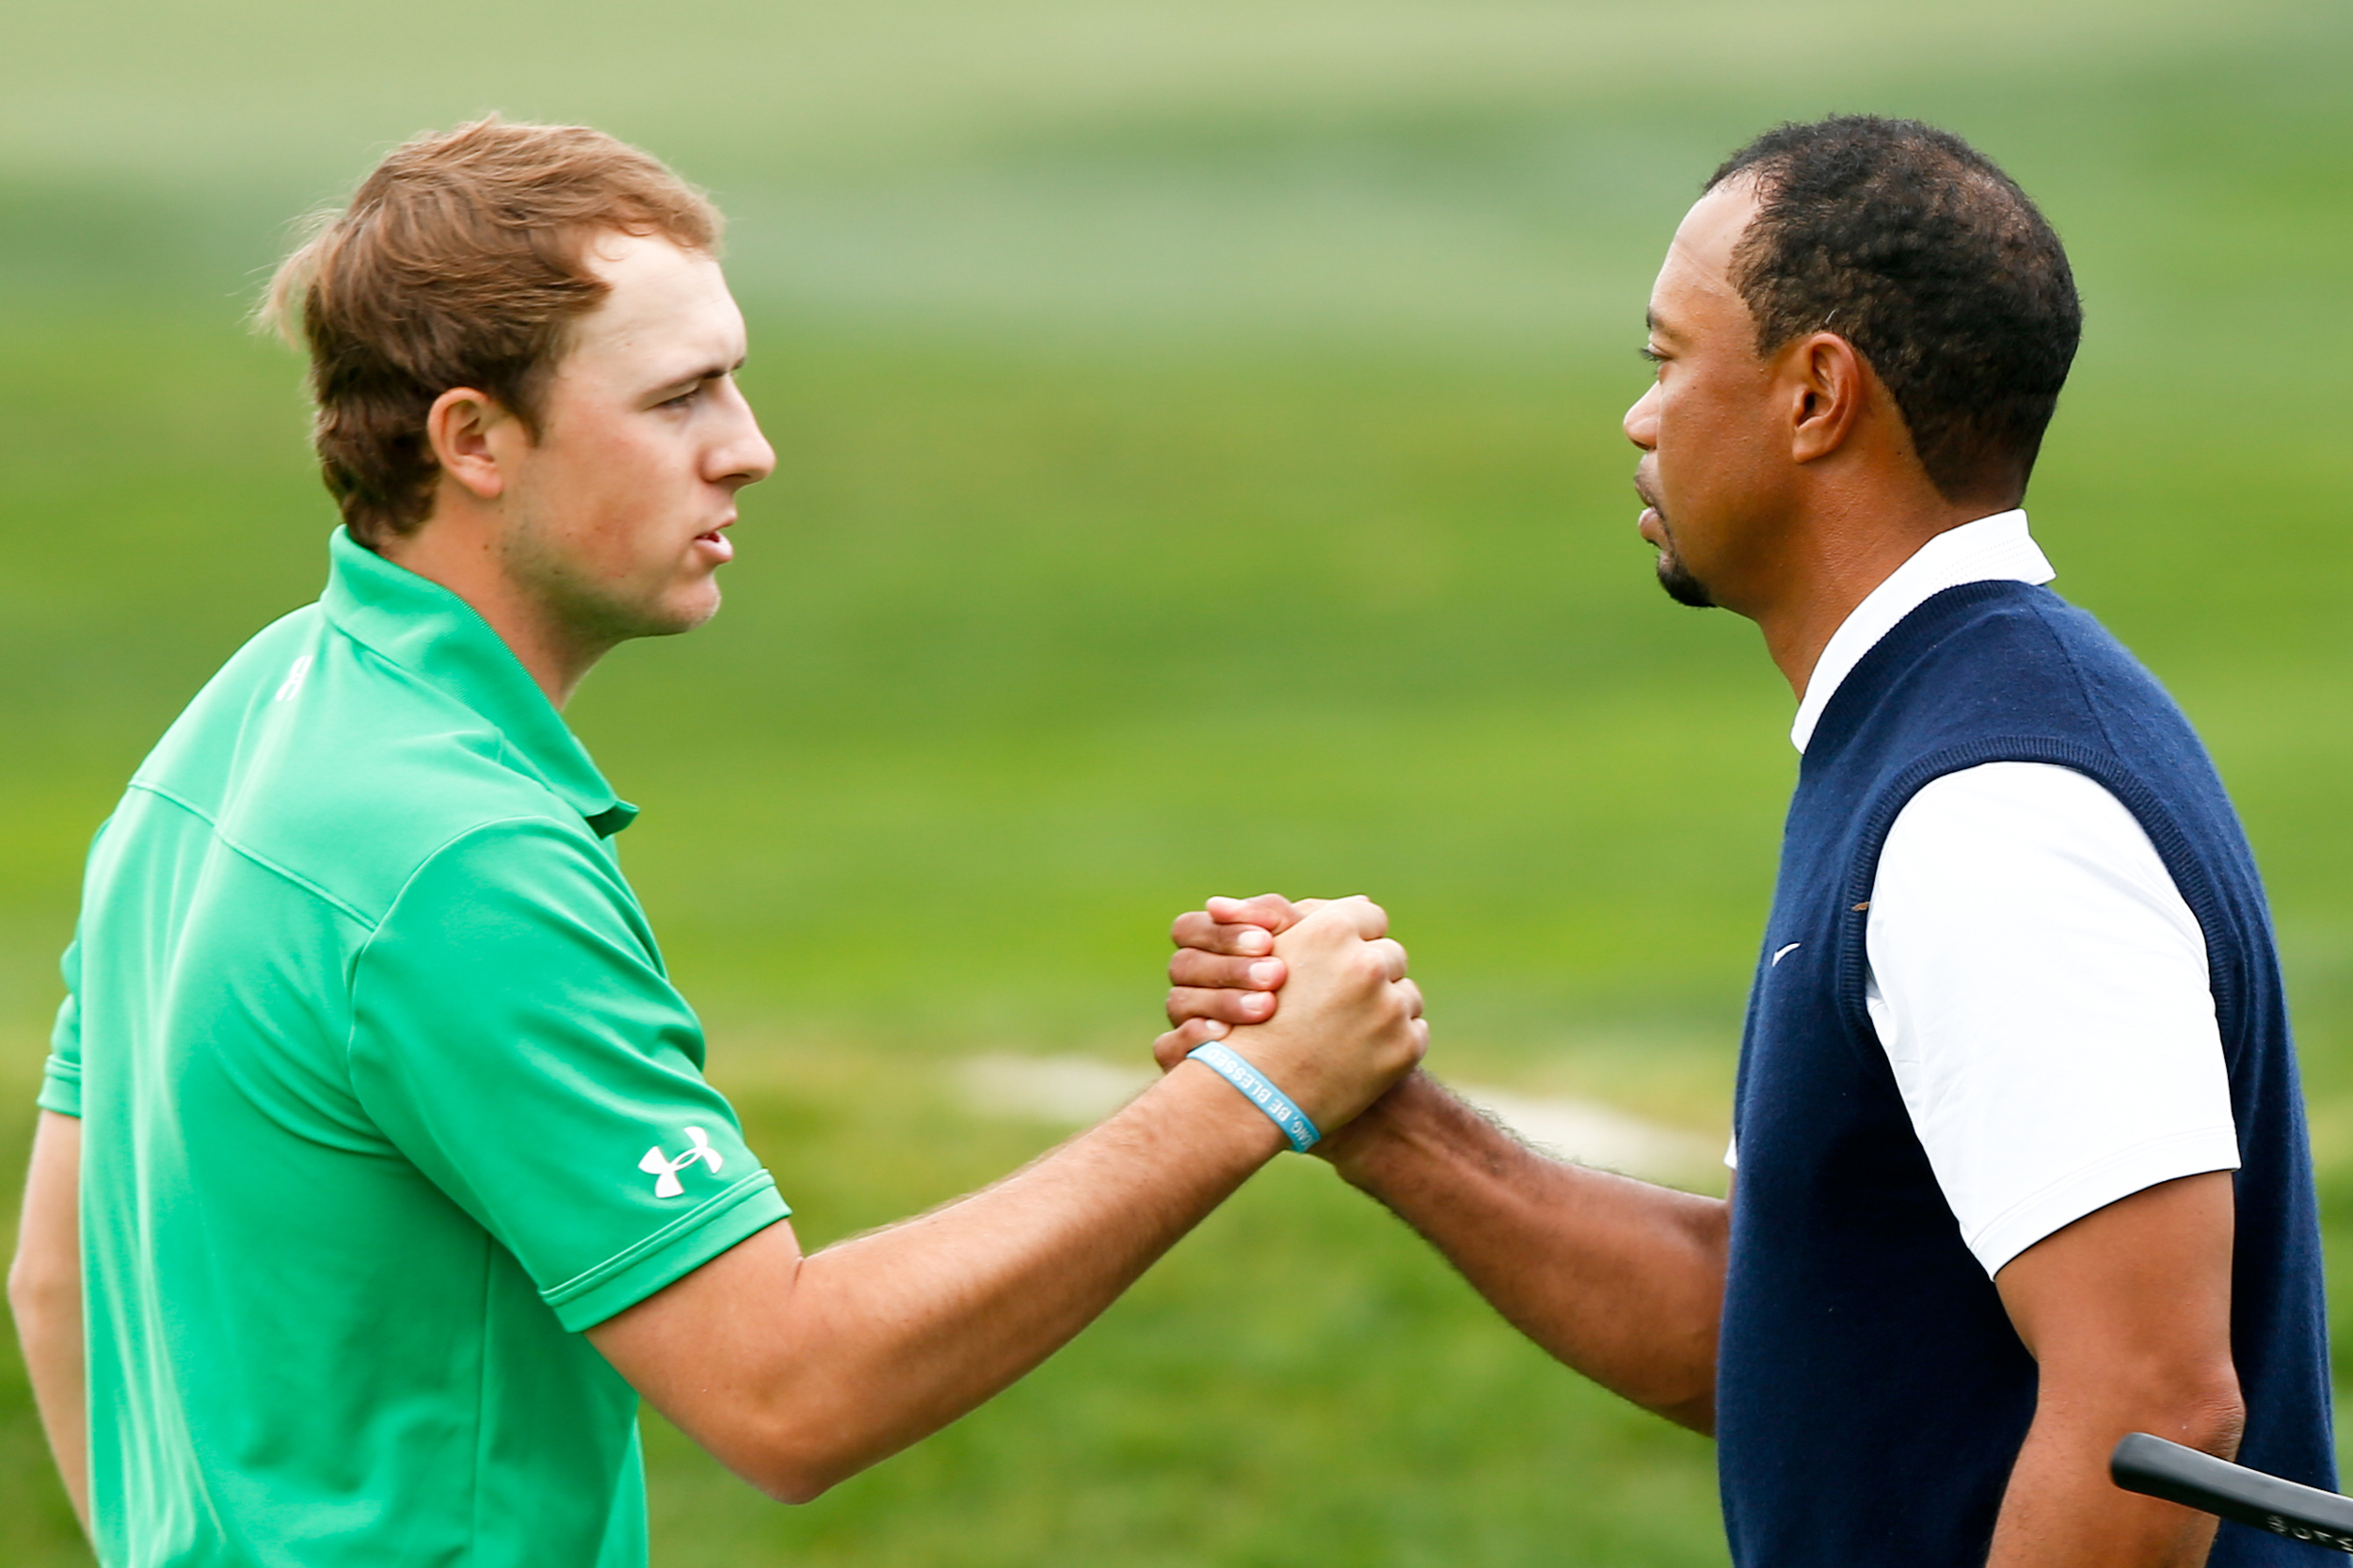 Jordan Spieth (l) shakes hands with Tiger Woods at Farmers Insurance Open golf tournament at Torrey Pines Municipal Golf Course in 2014. Spieth and Woods are two champion golffers who represent contrasting paths to the top.  Image supplied by Action Images / Debby Wong.